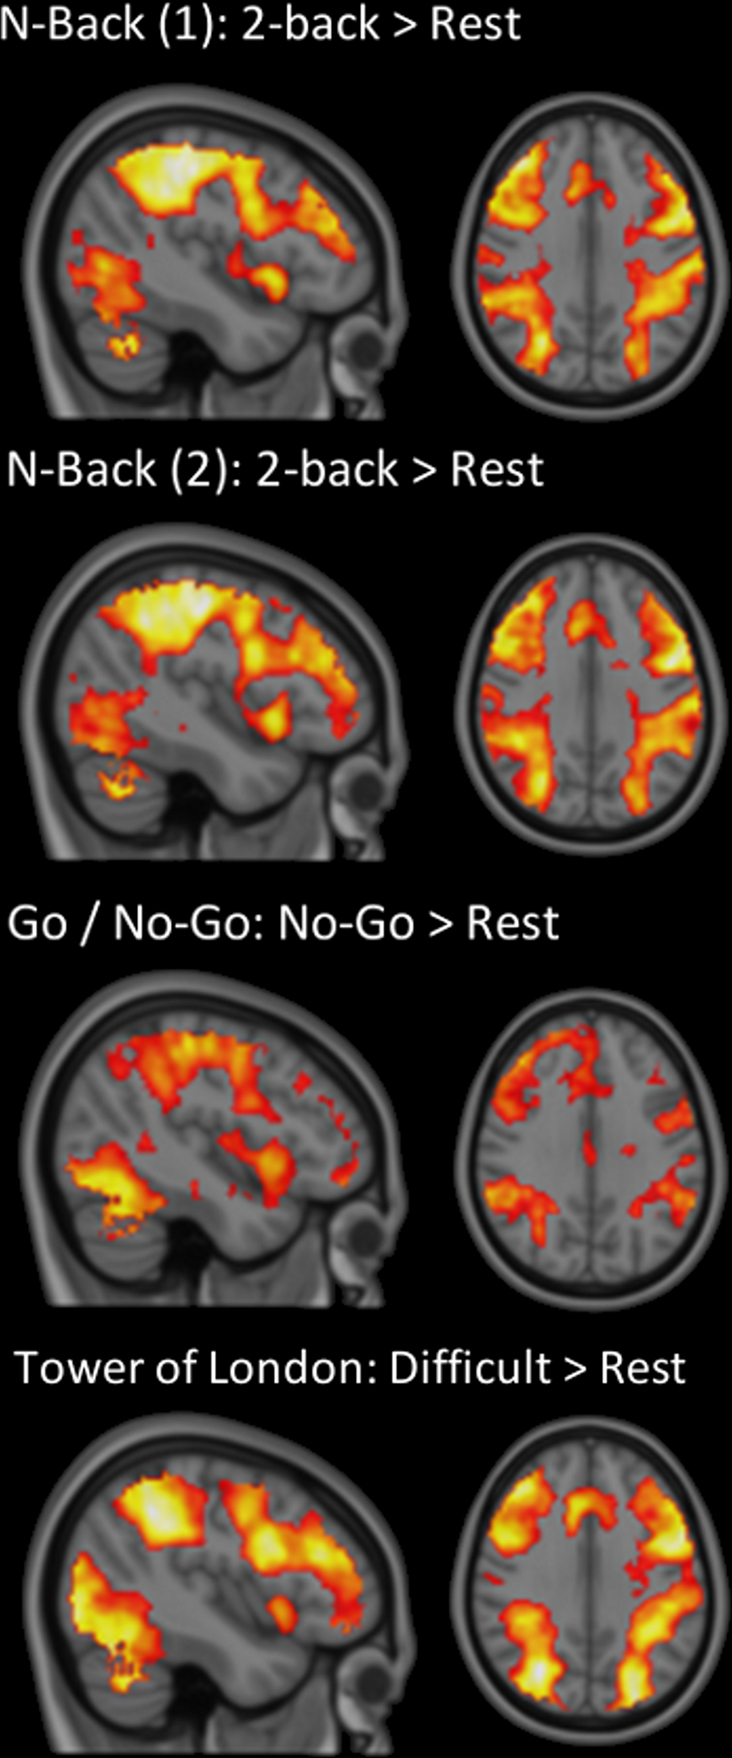 Frontiers | Executive Functions and Prefrontal Cortex: A